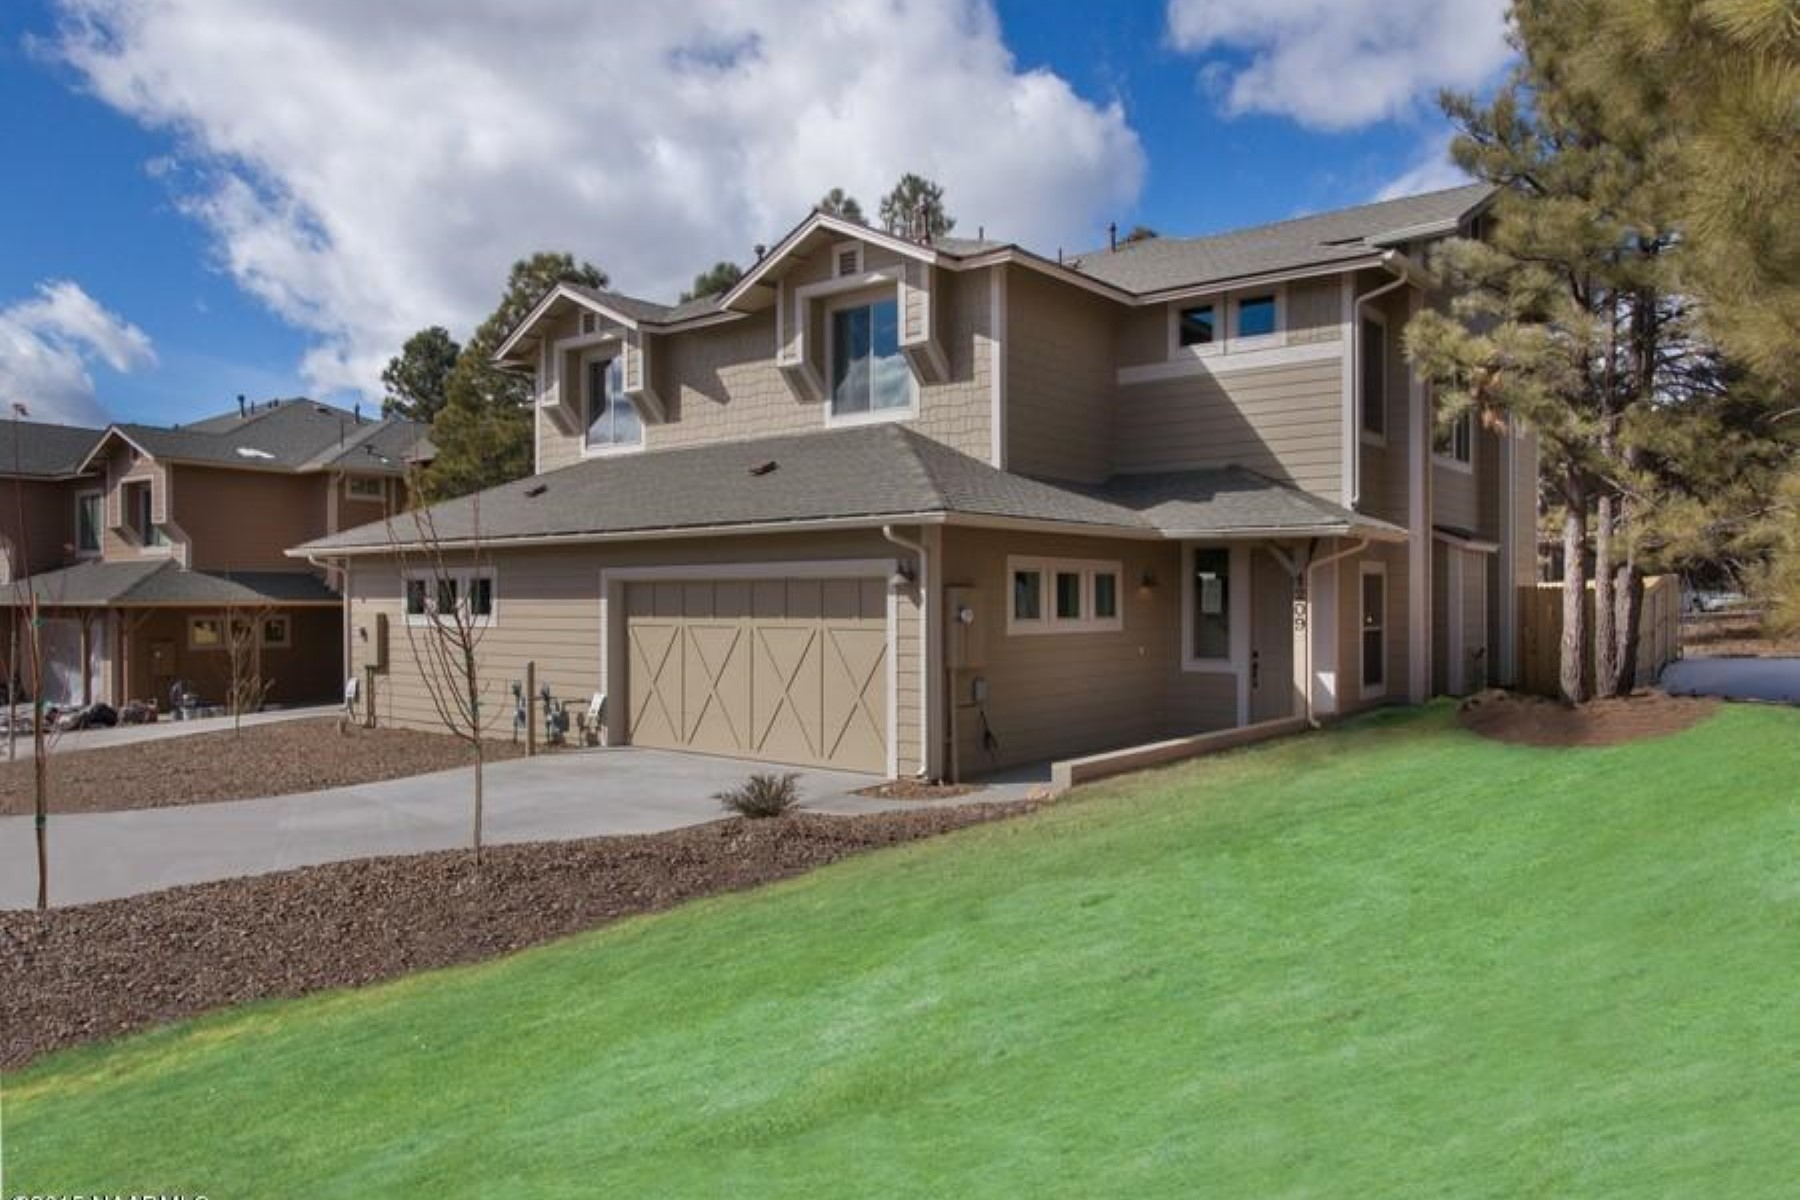 Single Family Home for Sale at Spectacular townhome by Miramonte Homes 3152 E Cold Springs TRL 51 Flagstaff, Arizona 86004 United States